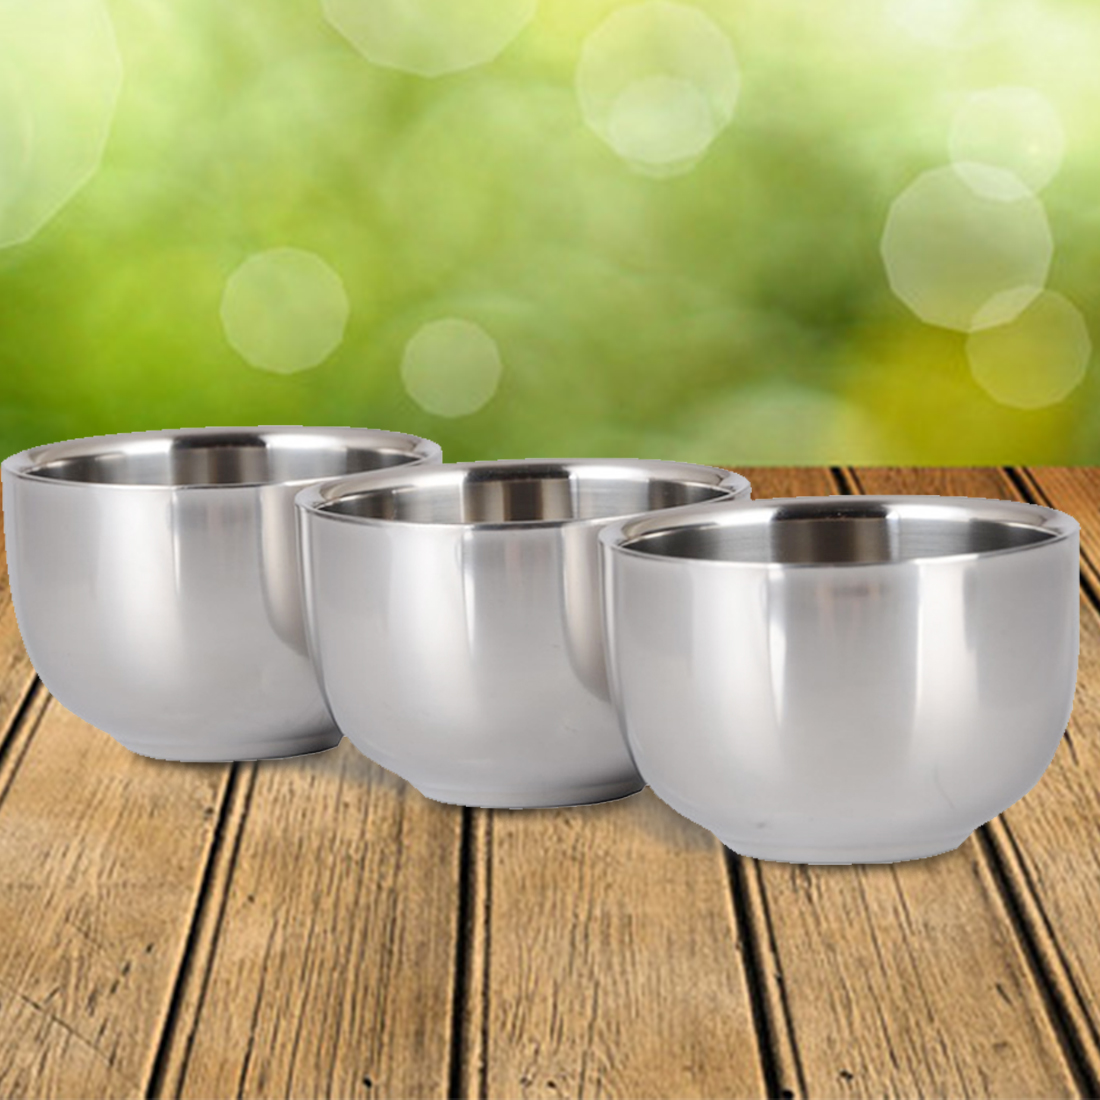 7.2cm Stainless Steel Nonmagnetic Cup Smooth surface Home and garden kitchen tool Kitchen accessary two layer Cup